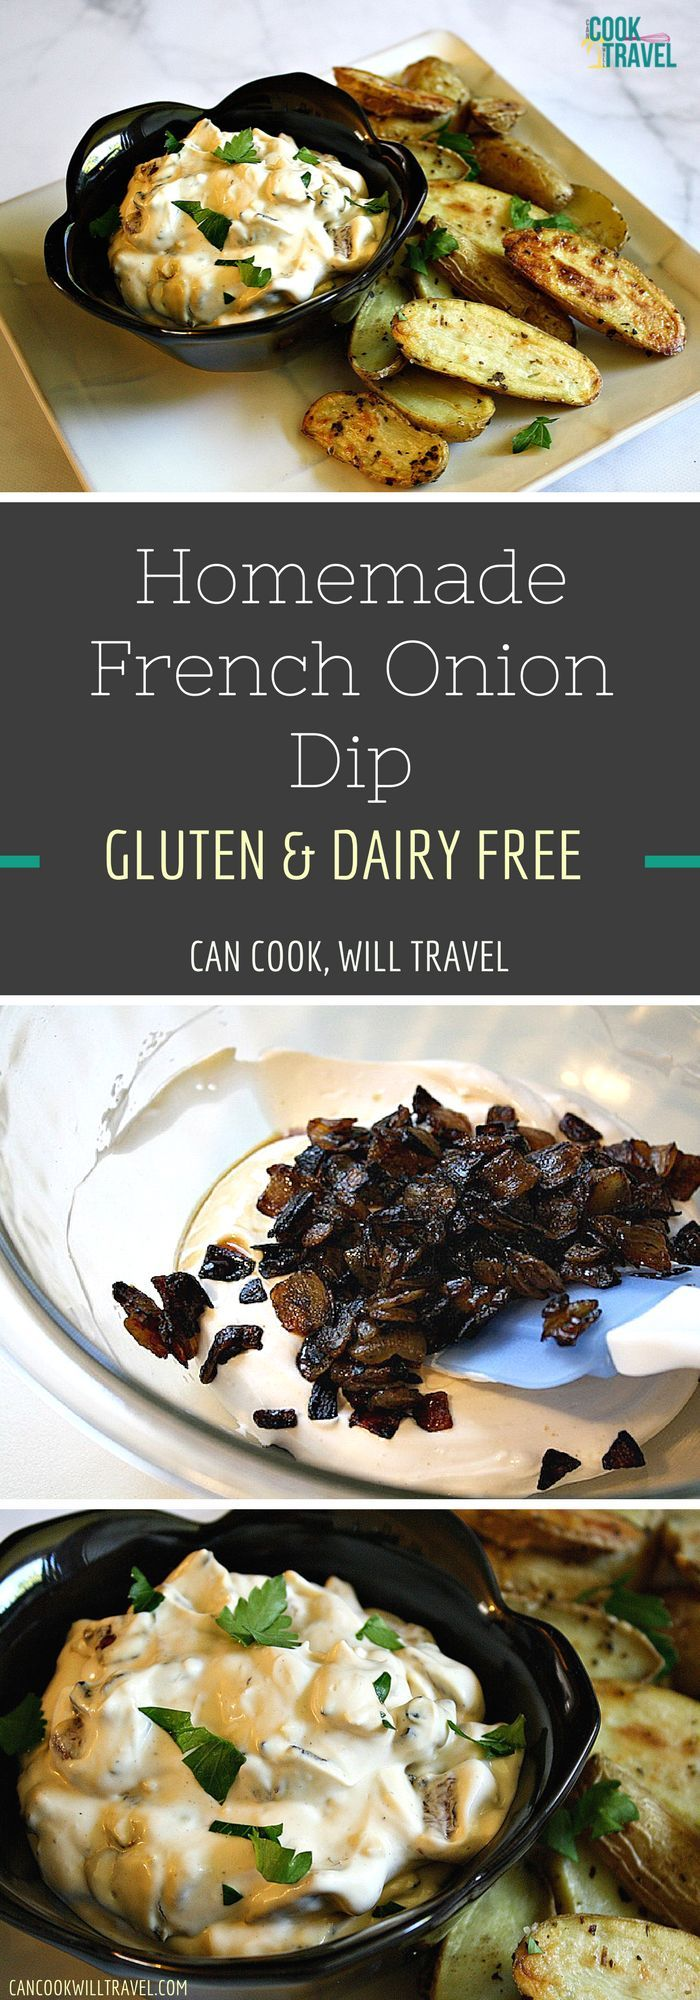 Oh yes this Dairy Free Homemade French Onion Dip is creamy, delicious, and perfect for dipping! I included a recipe for some yummy roasted potatoes to dip in it, because it's the right thing to do! Enjoy this gluten free & dairy free recipe ASAP!